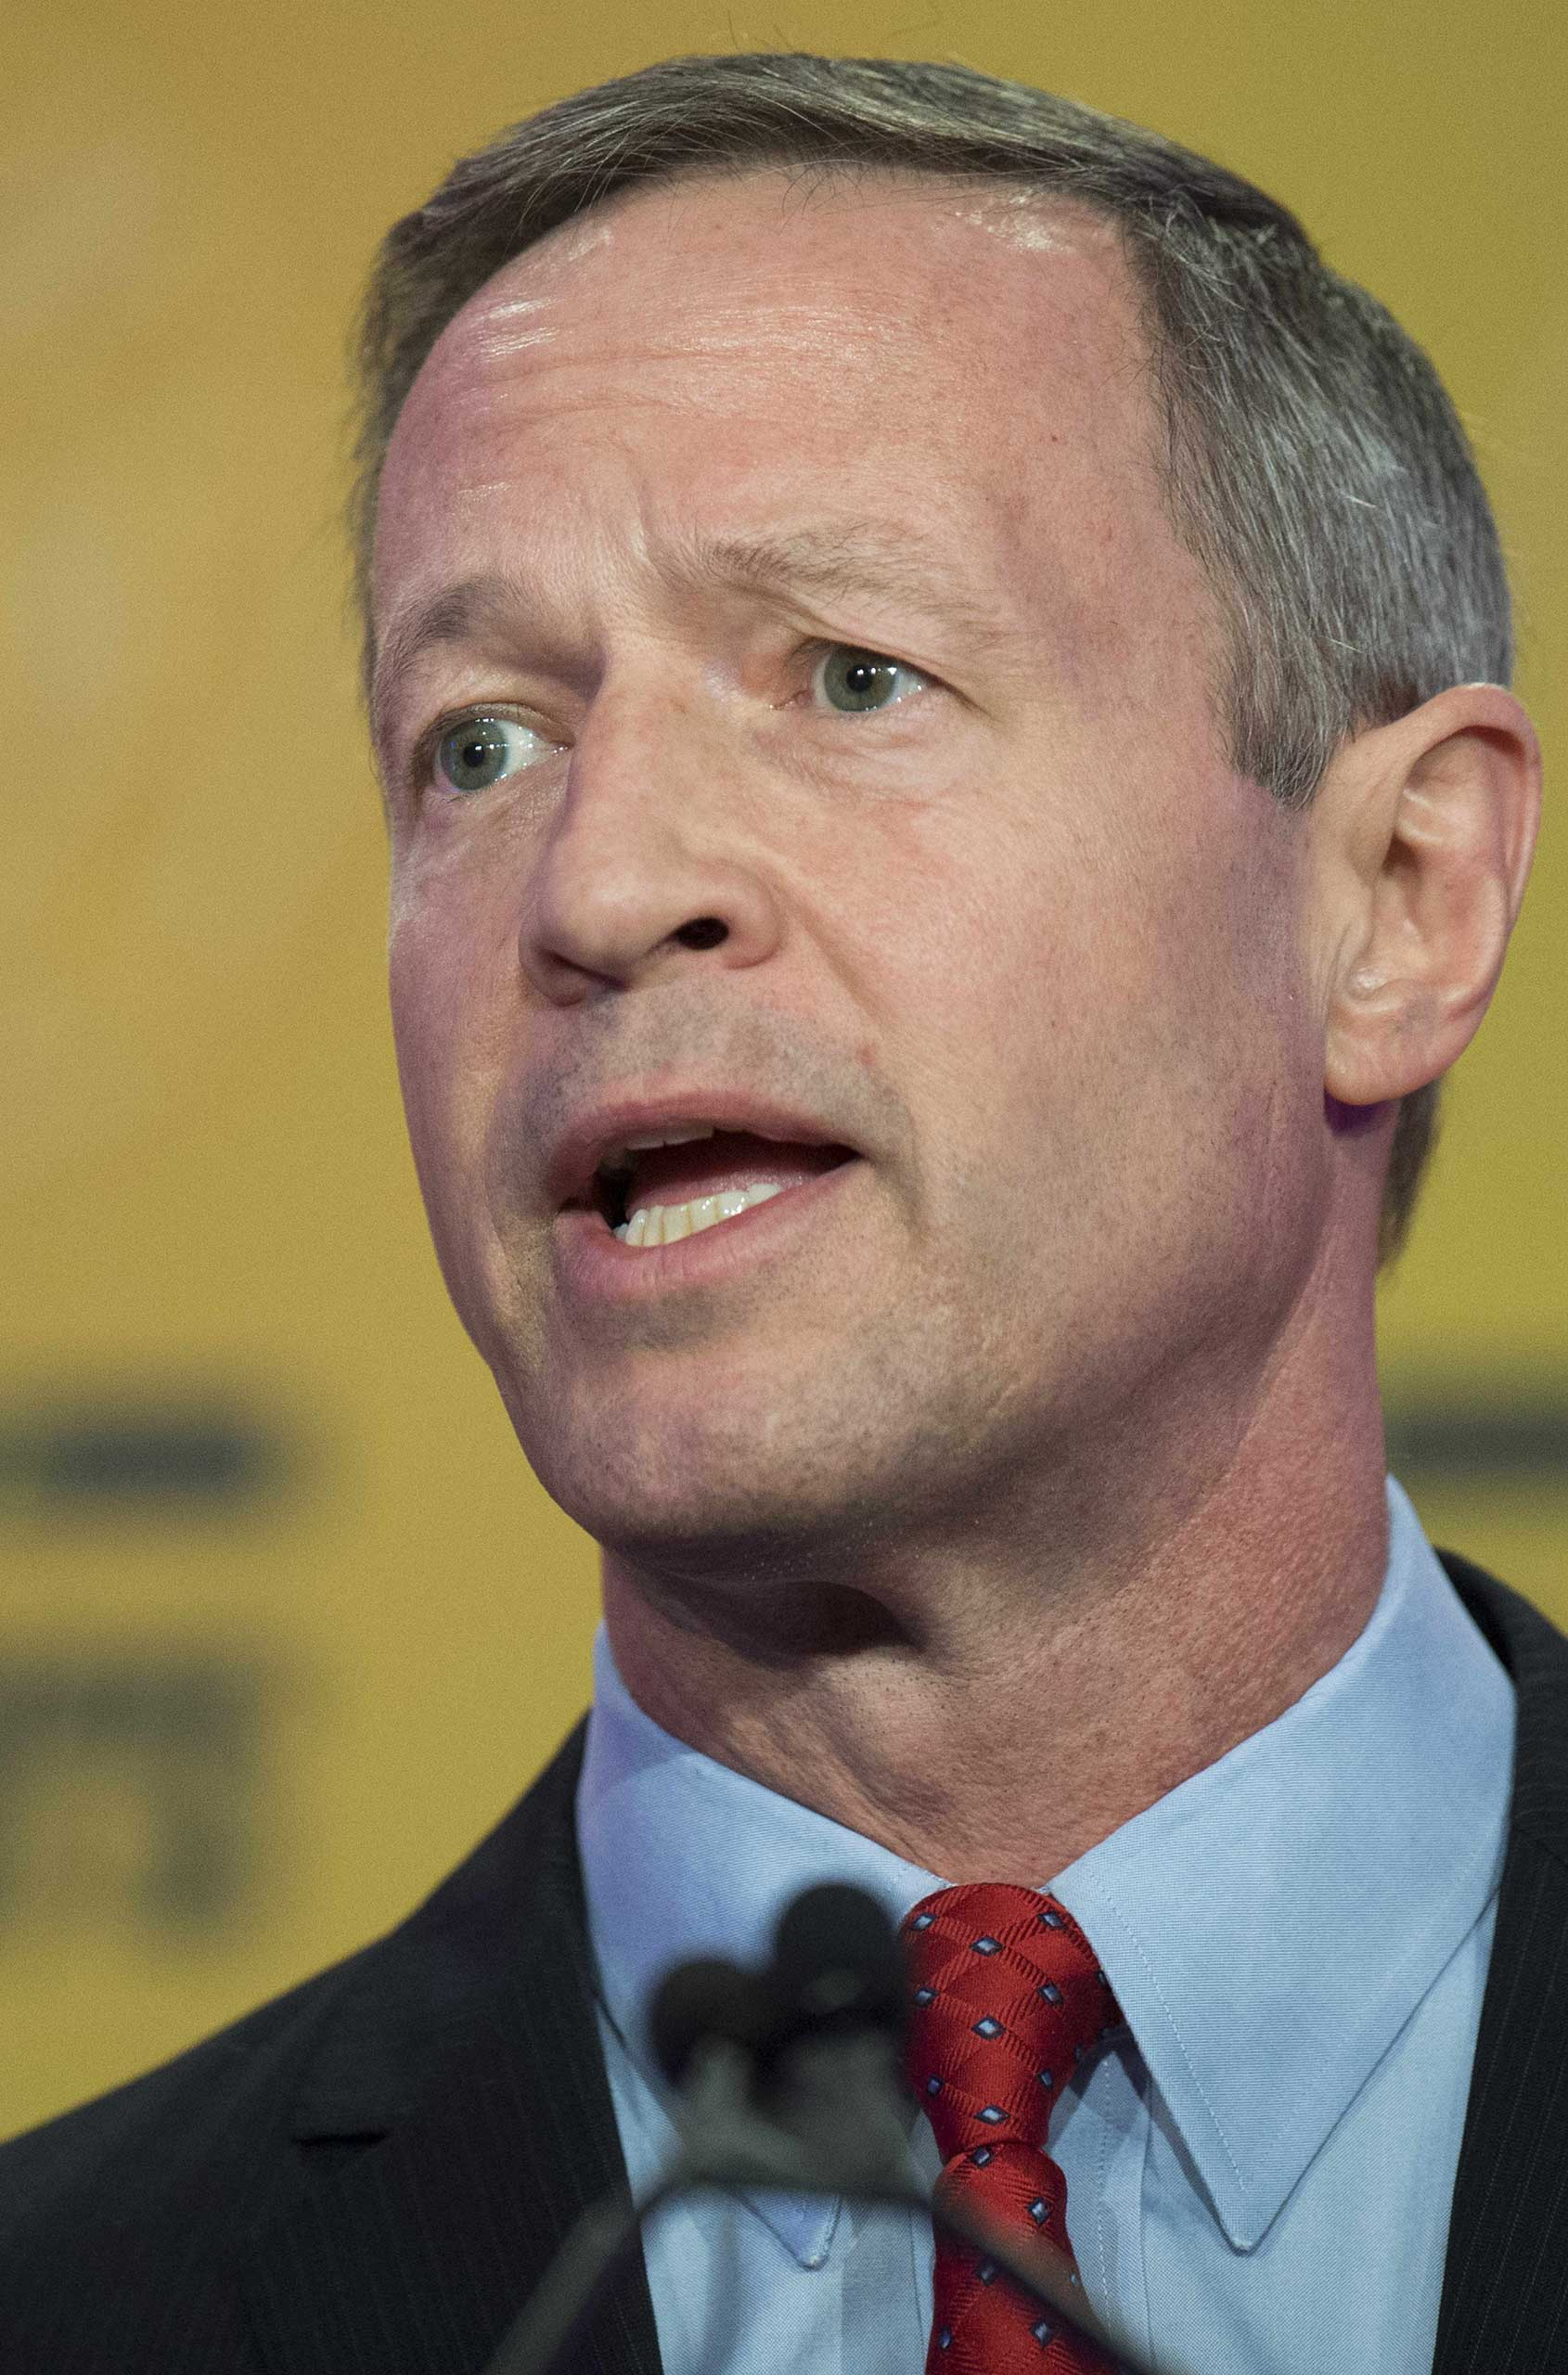 Former Democratic Maryland Governor Martin O'Malley addresses the 2015 International Association of Fire Fighters (IAFF) Alfred K. Whitehead Legislative Conference and Presidential Forum in Washington, DC, March 10, 2015.